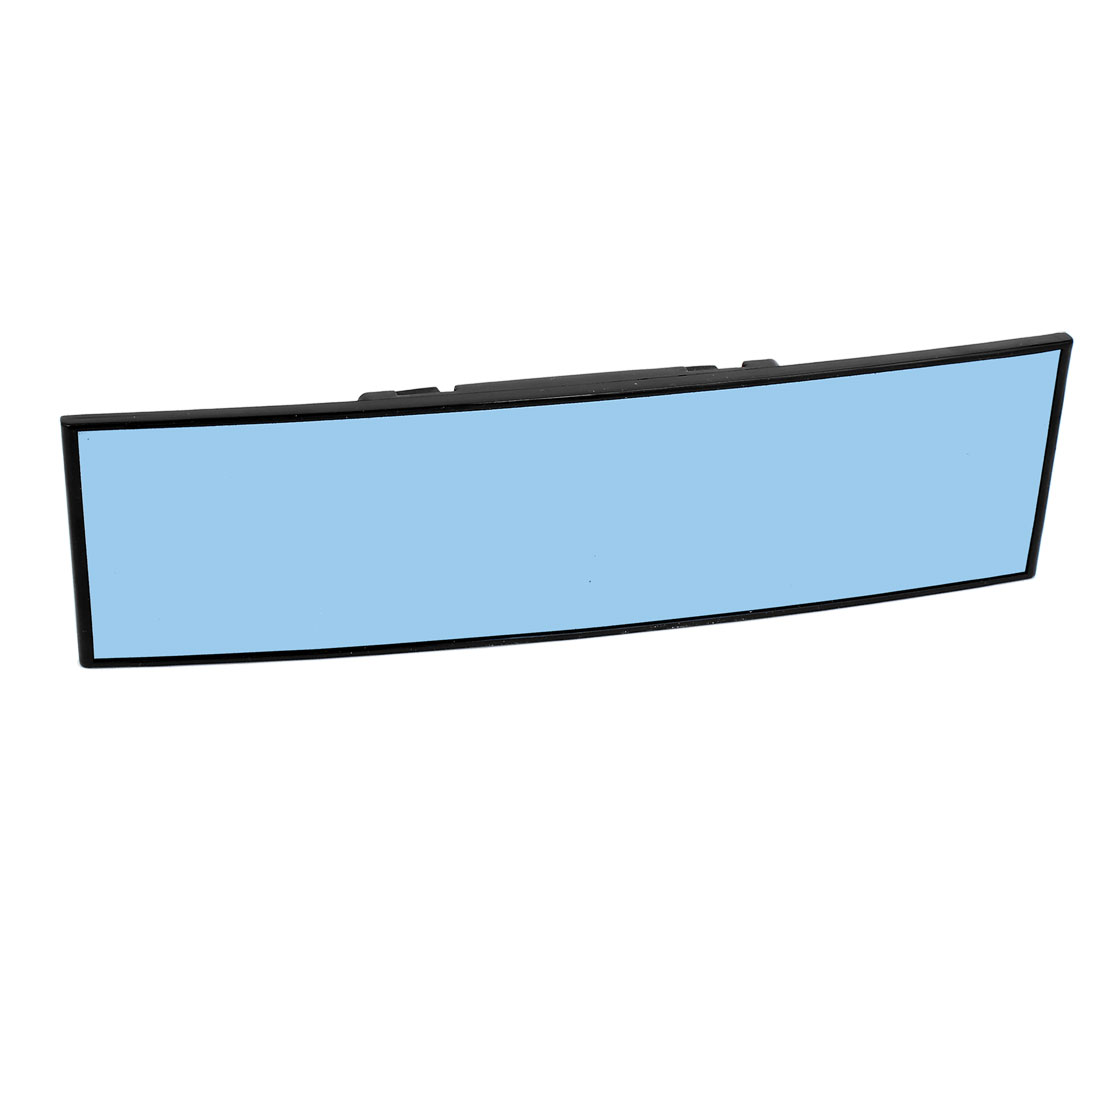 280mm Convex Blue Tinted Interior Clip On Rear View Mirror Universal